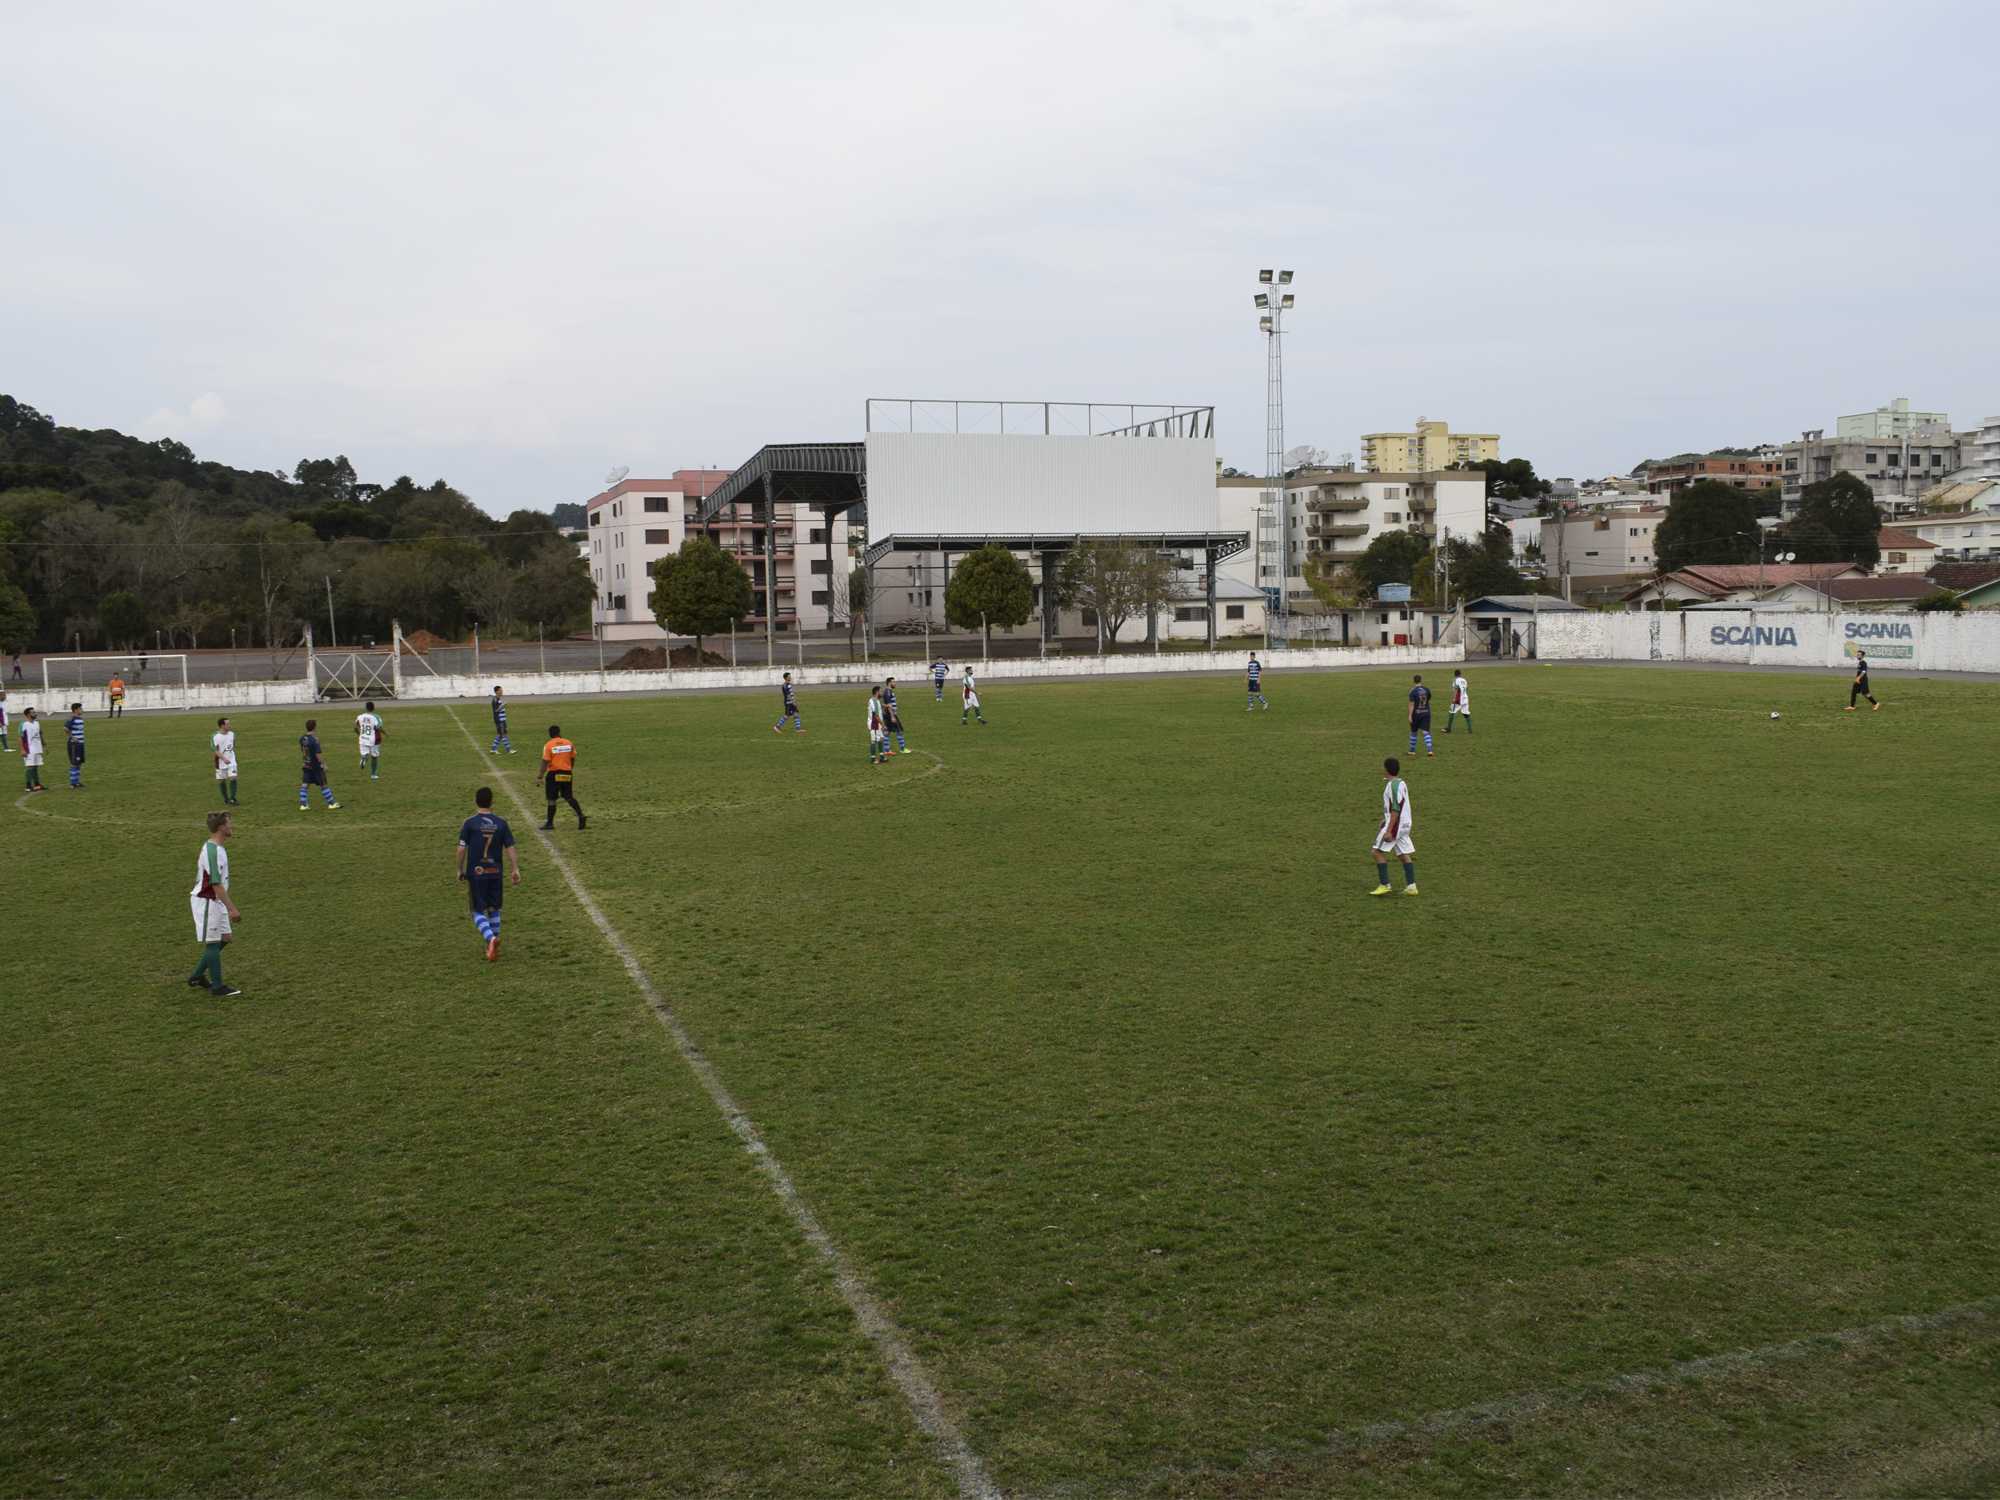 ESTÁDIO ELIAS SOLDATELLI